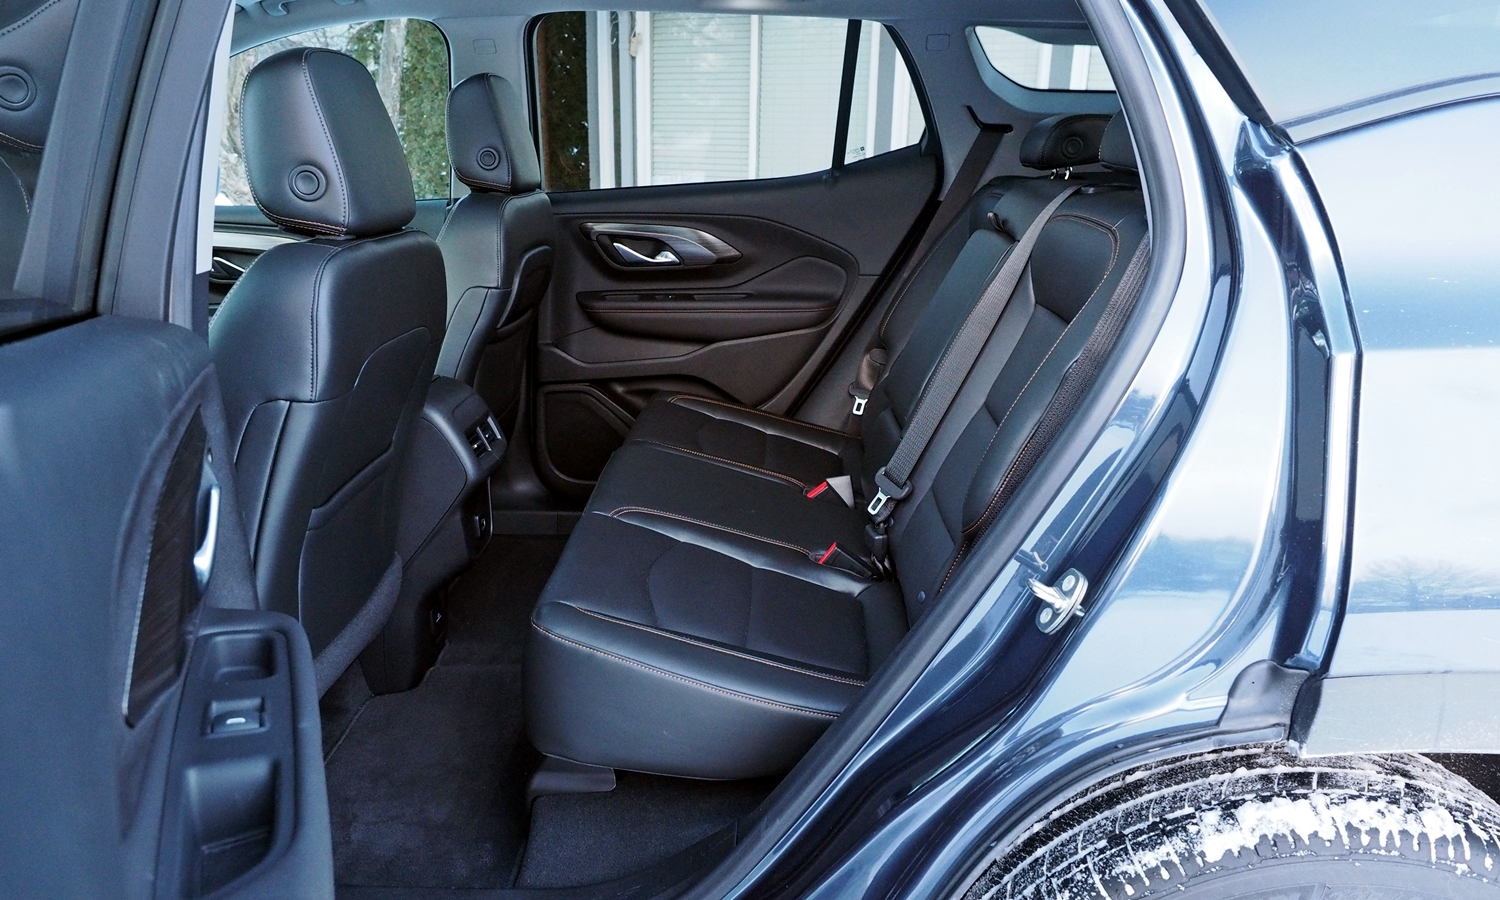 GMC Terrain Photos: 2018 GMC Terrain rear seat